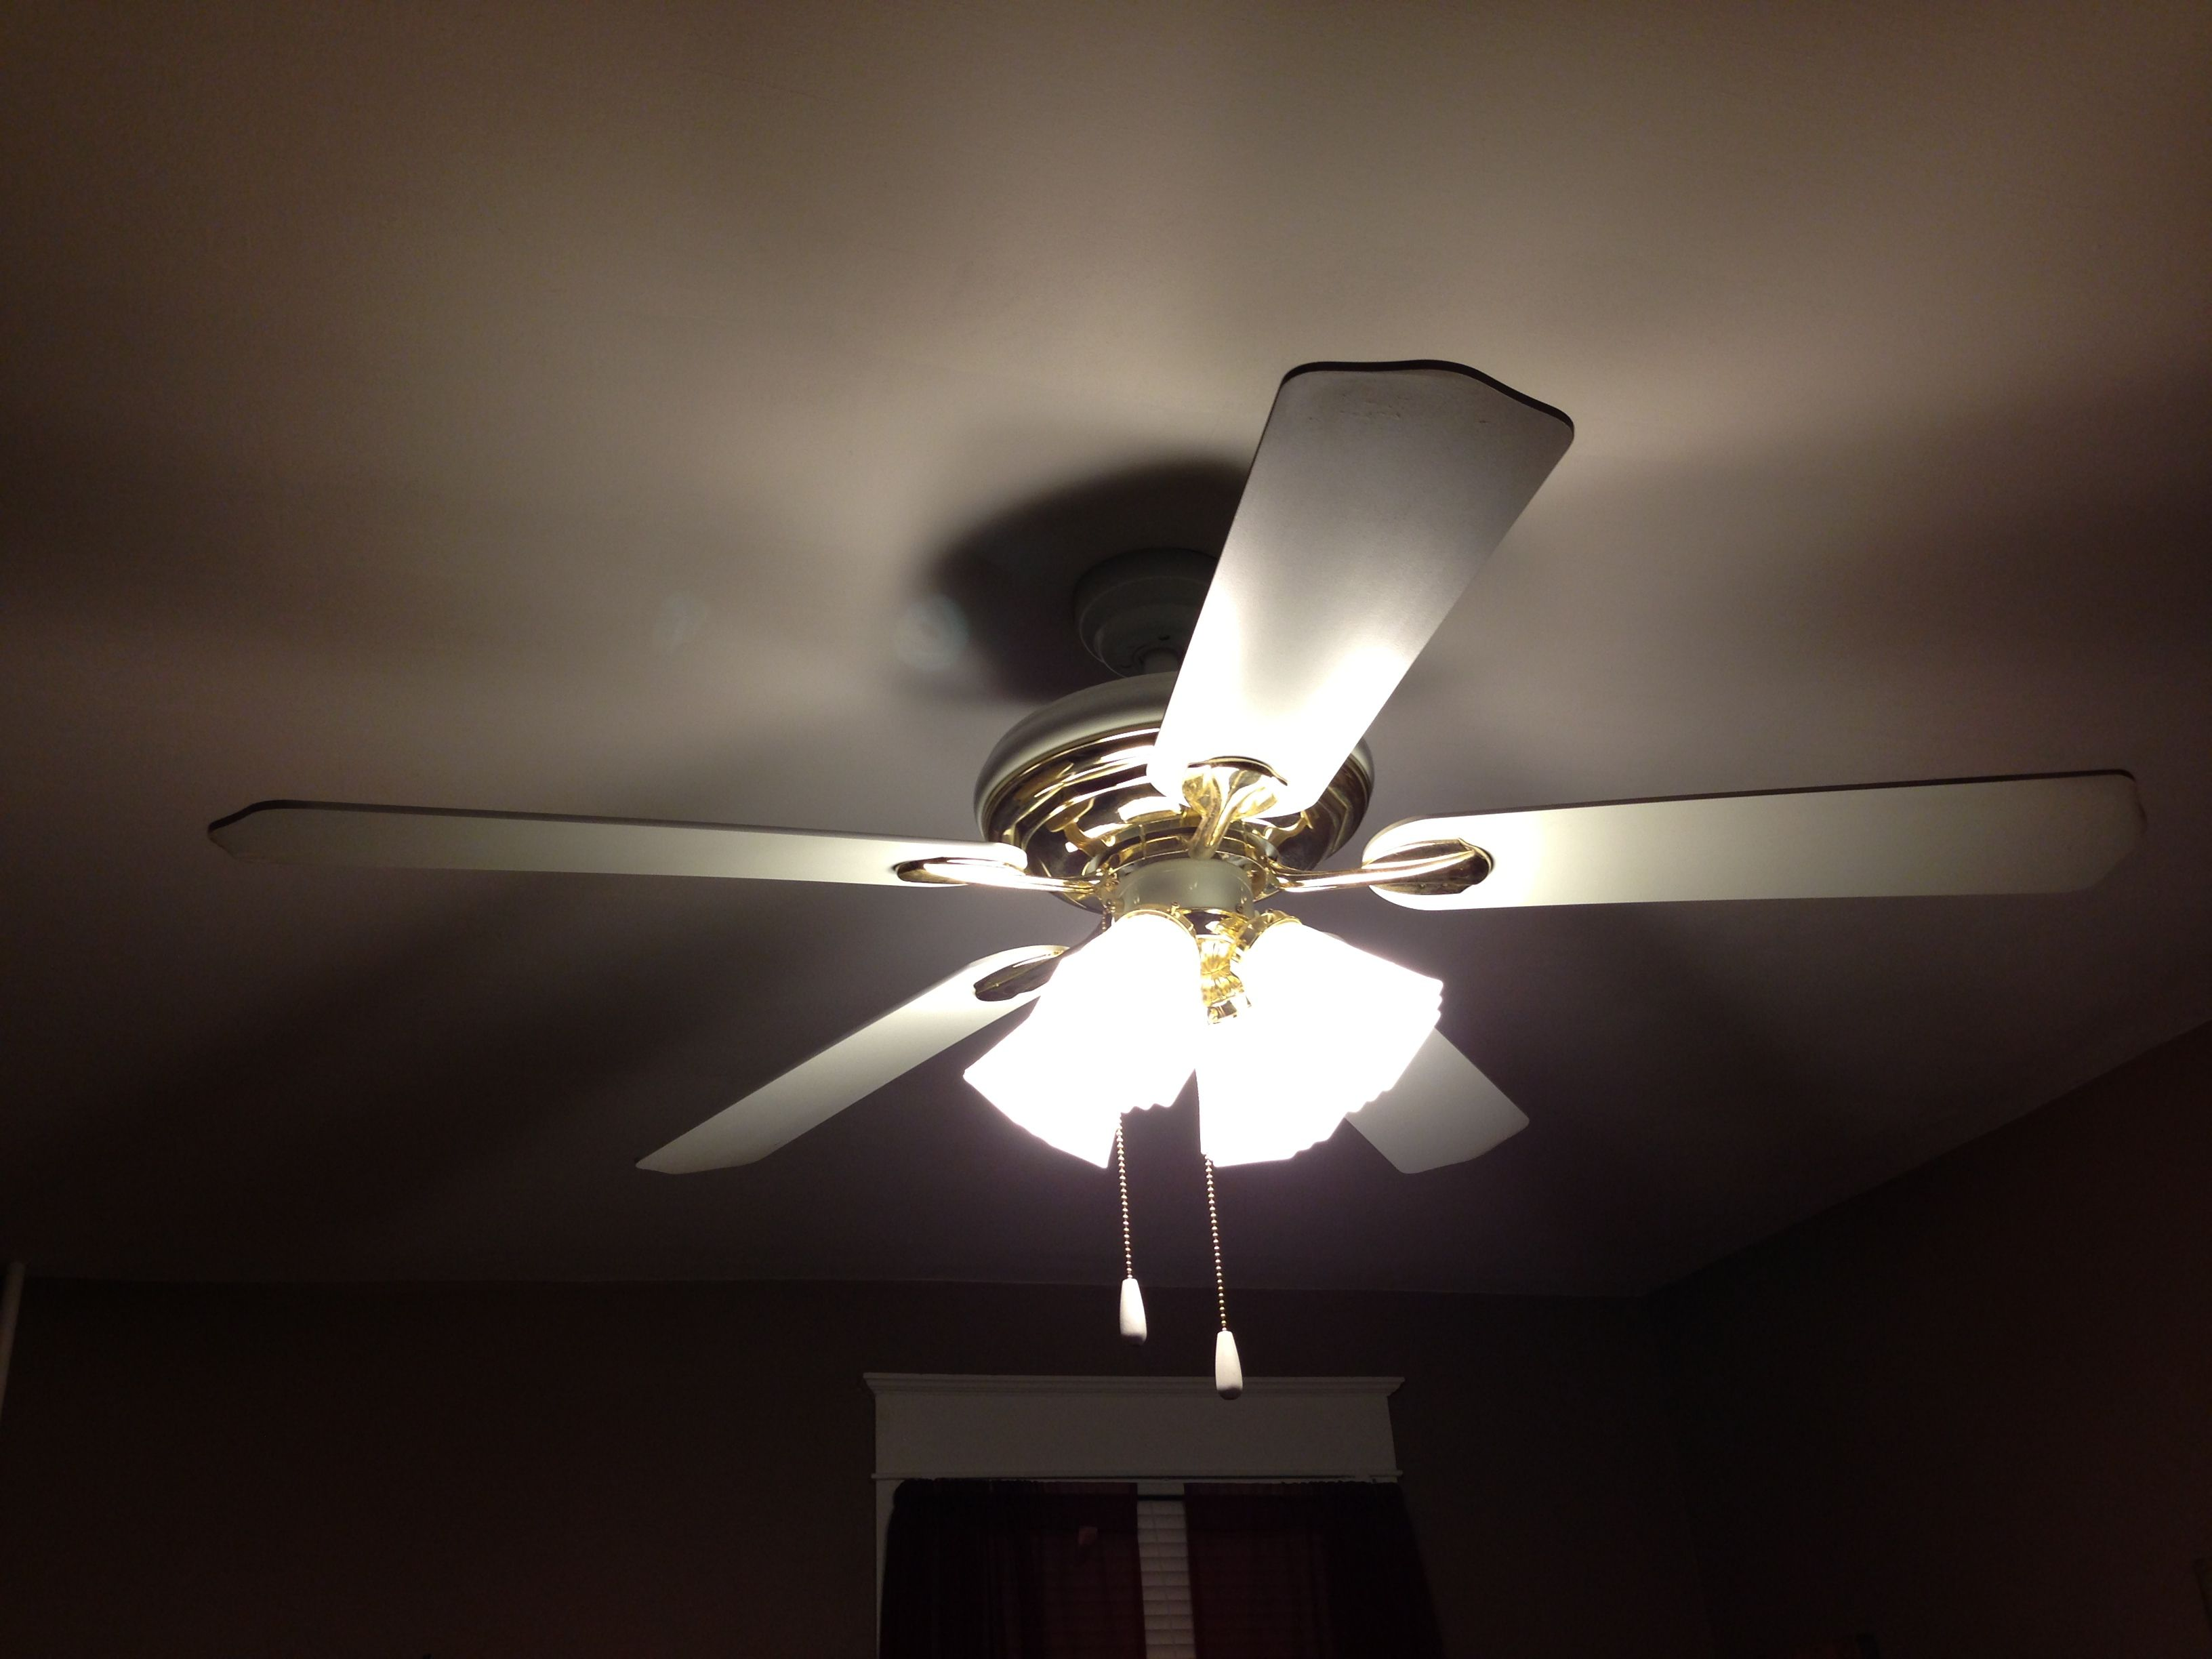 Fix That Annoying Tick Your Ceiling Fan Makes Check And Tighten Screws About Motor Where The Cotter Pin Is Che Diy Household Tips Ceiling Fan Household Hacks